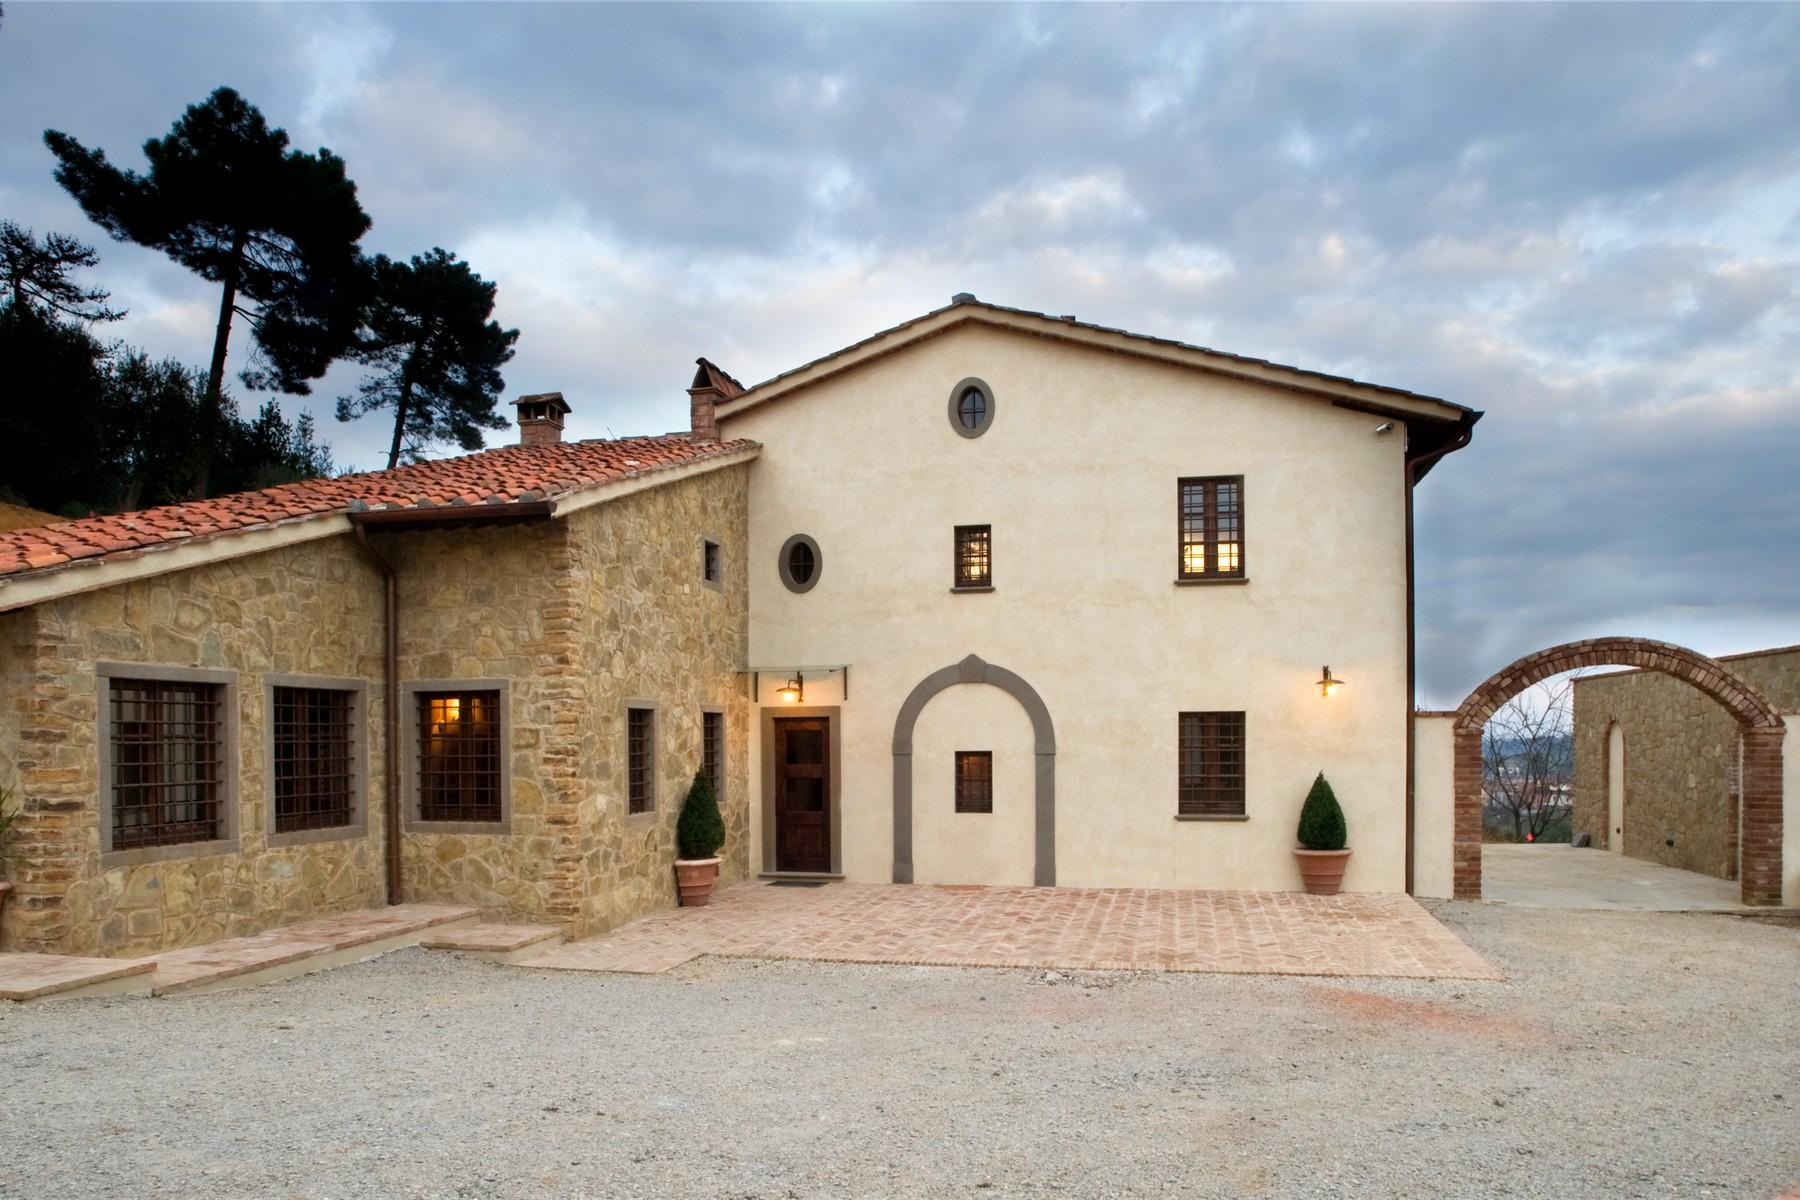 Farmhouse for sale in the Tuscan hills - 3